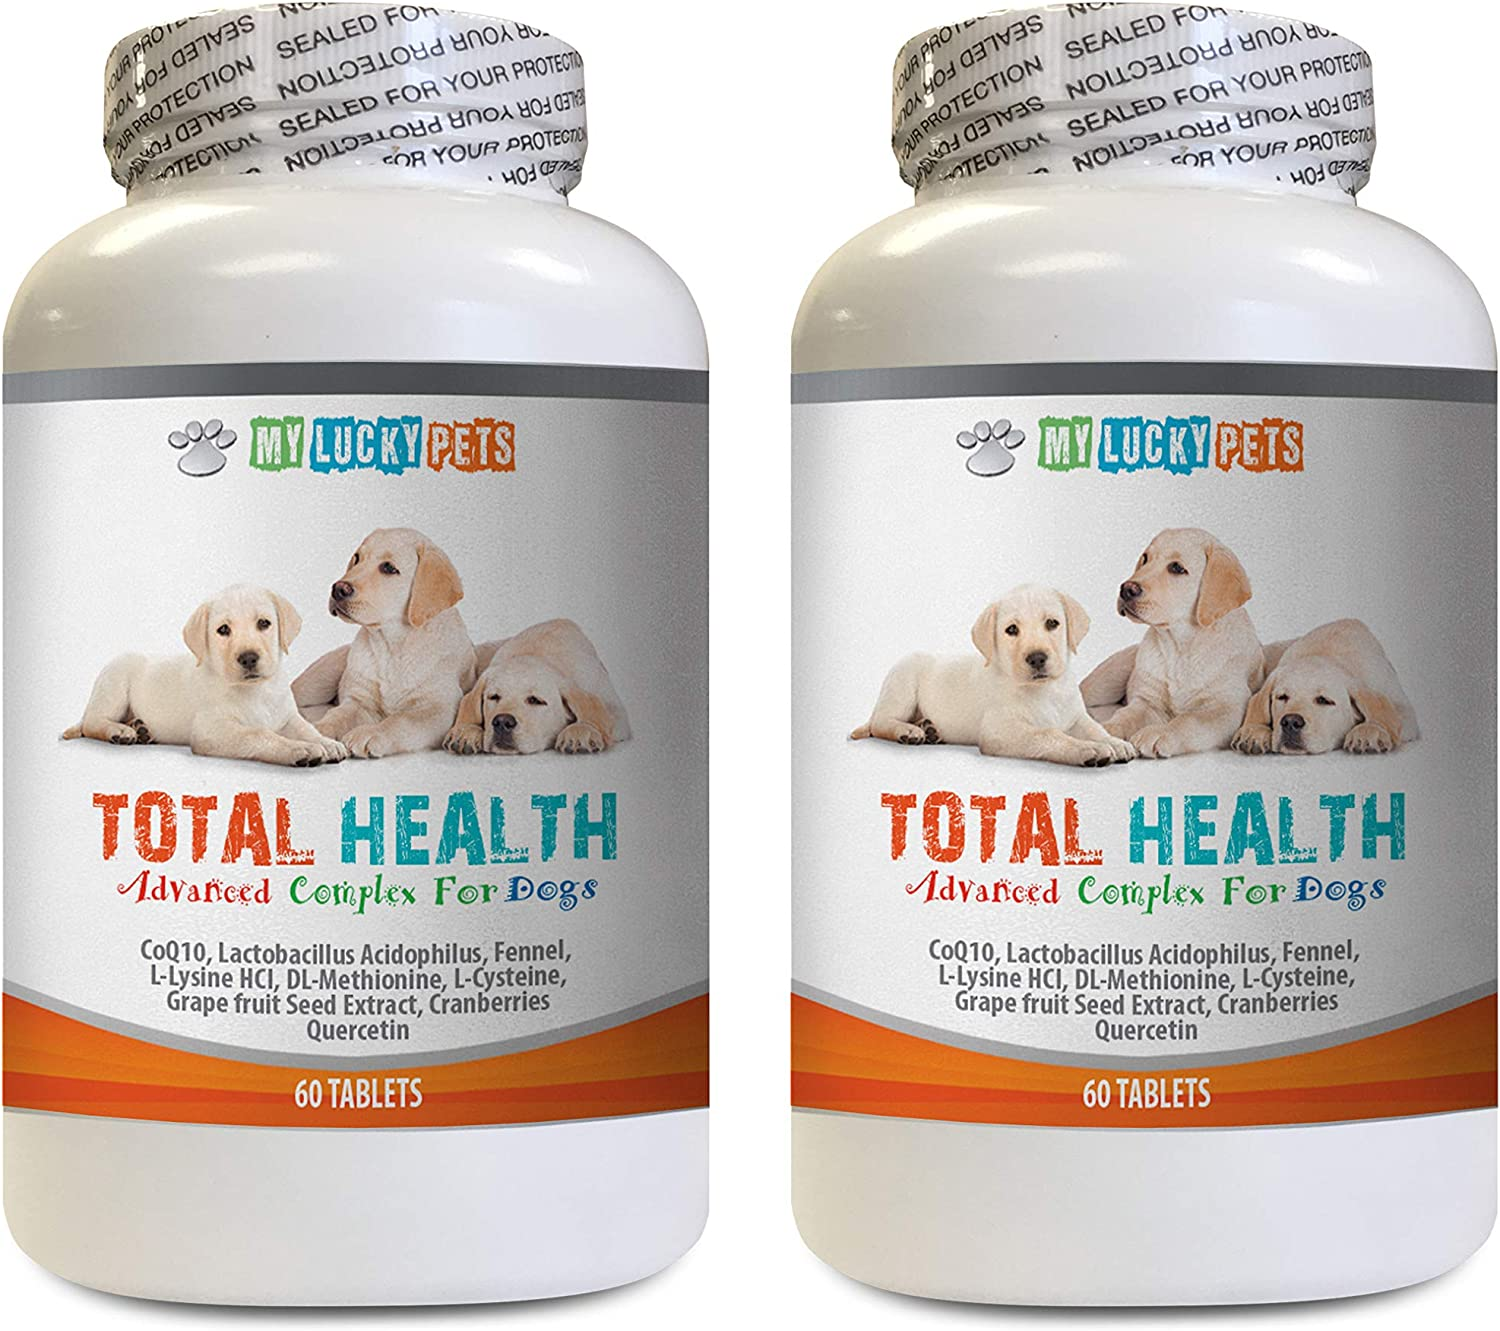 Dog Skin Soother - Dogs Total Health Some reservation Coat Complex Hair Te Finally popular brand